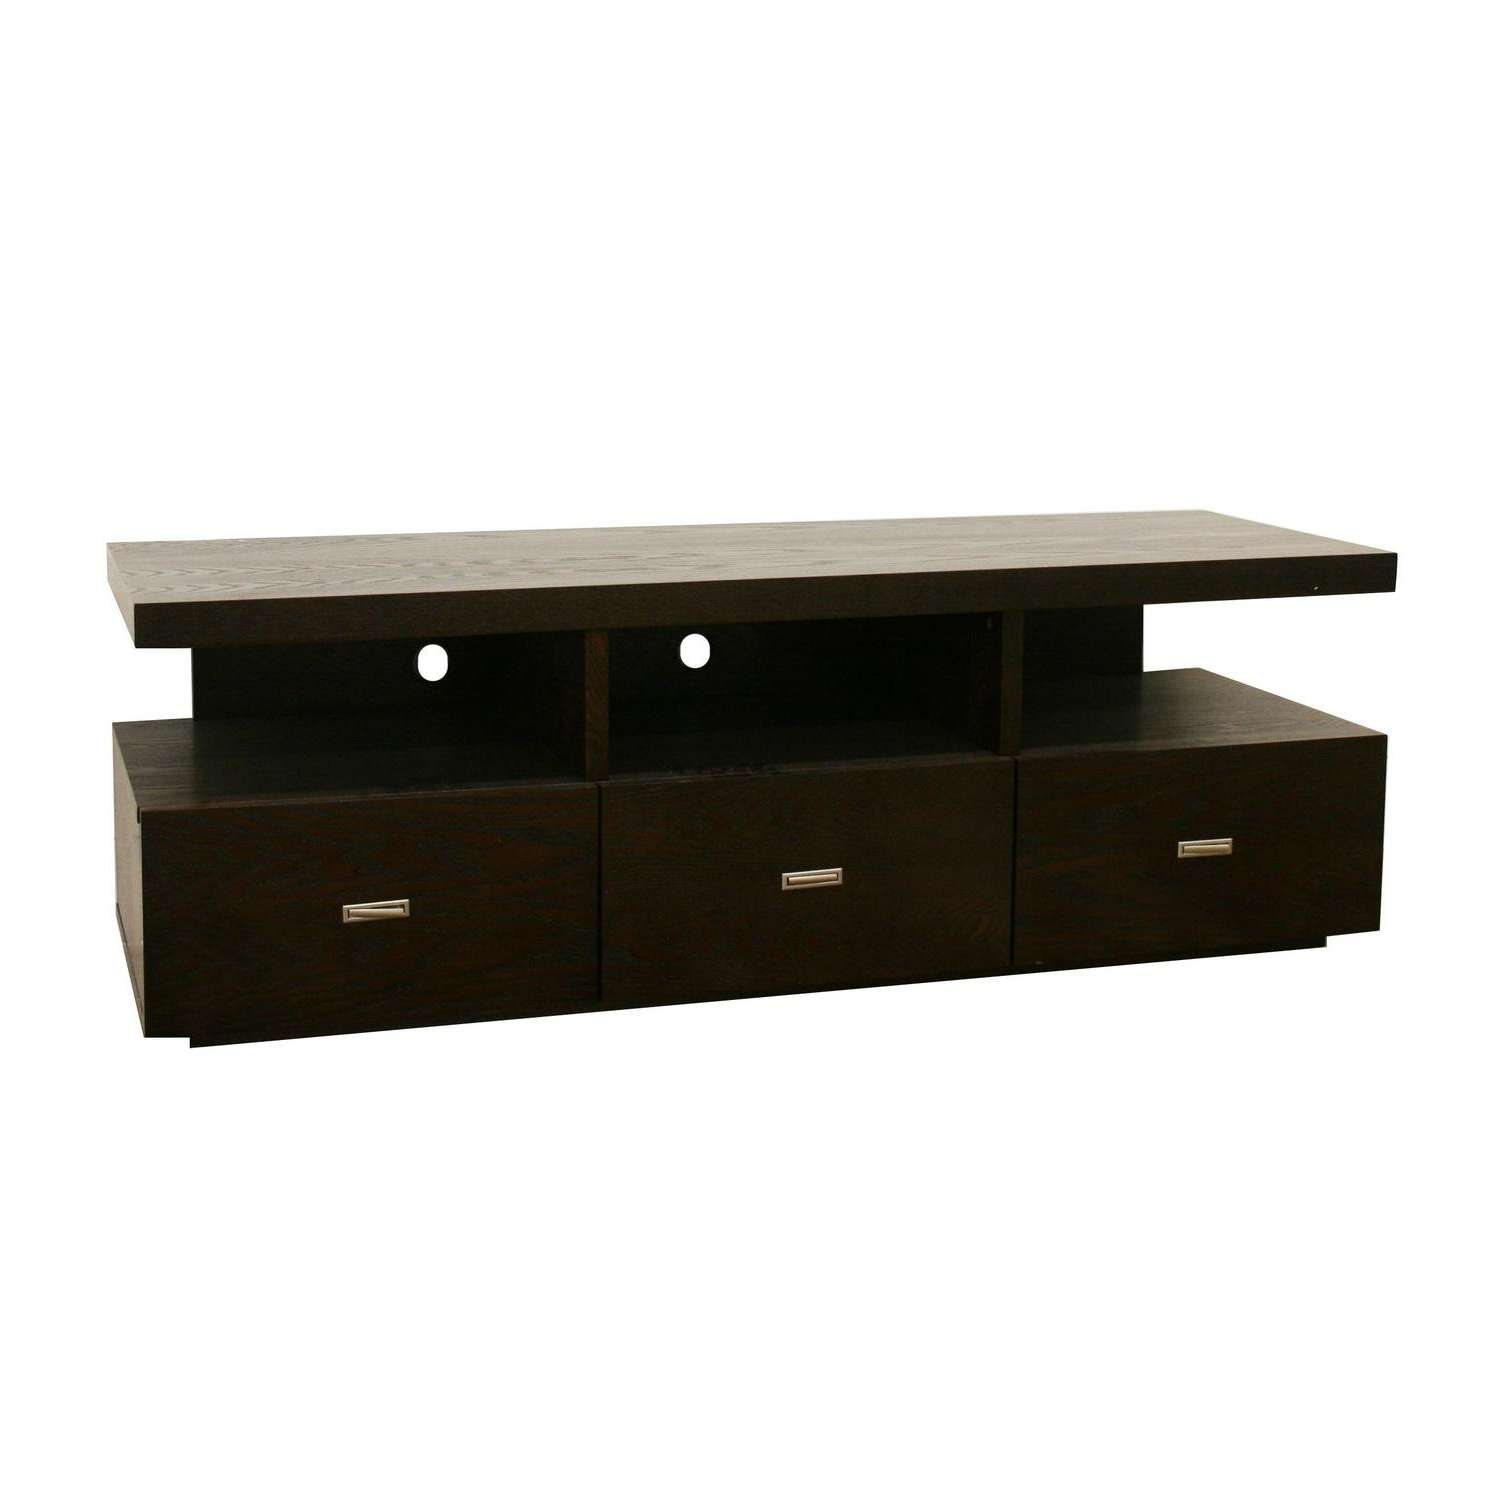 Thinking Of Buying A Dark Wood Tv Stand? Follow These Buyr's Guide Intended For Dark Wood Tv Stands (View 14 of 15)